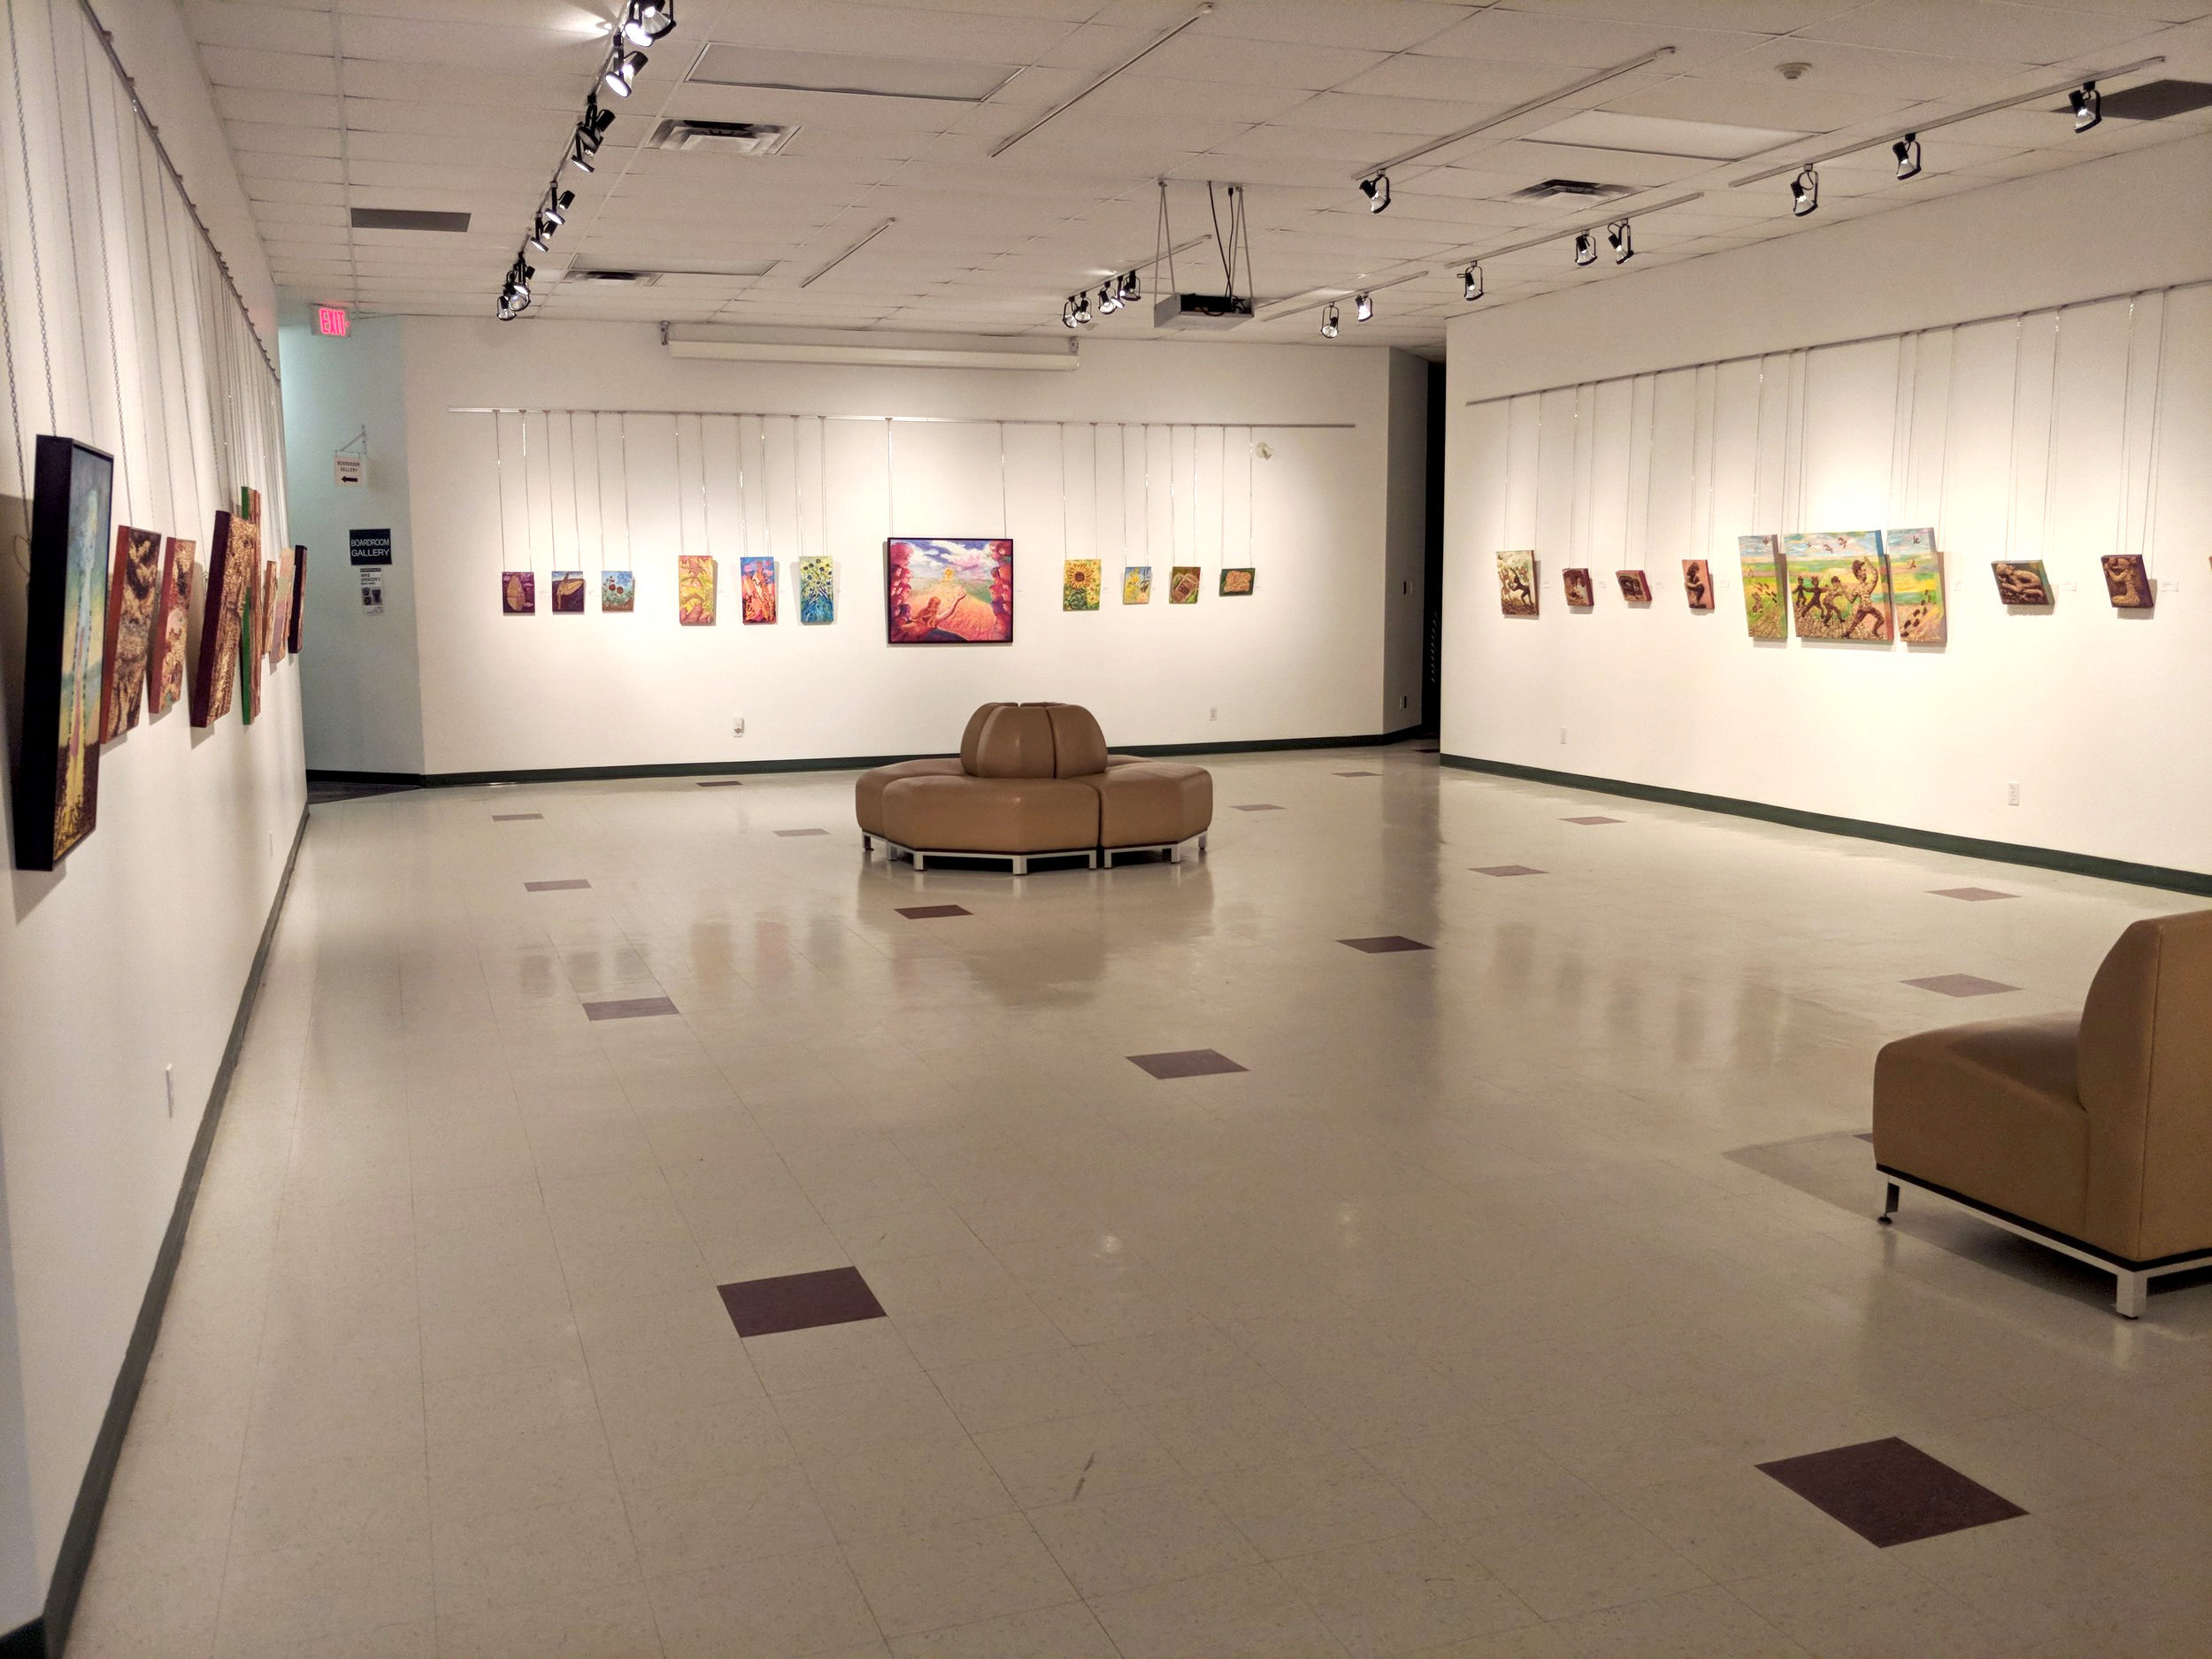 Main Gallery - The Main Gallery features a new exhibit or installation every few months, and showcases works from Manitoba and across the country. Features 200 running feet of wall space, and approximately 1700 square feet of floor space. Maximum of 100 people.